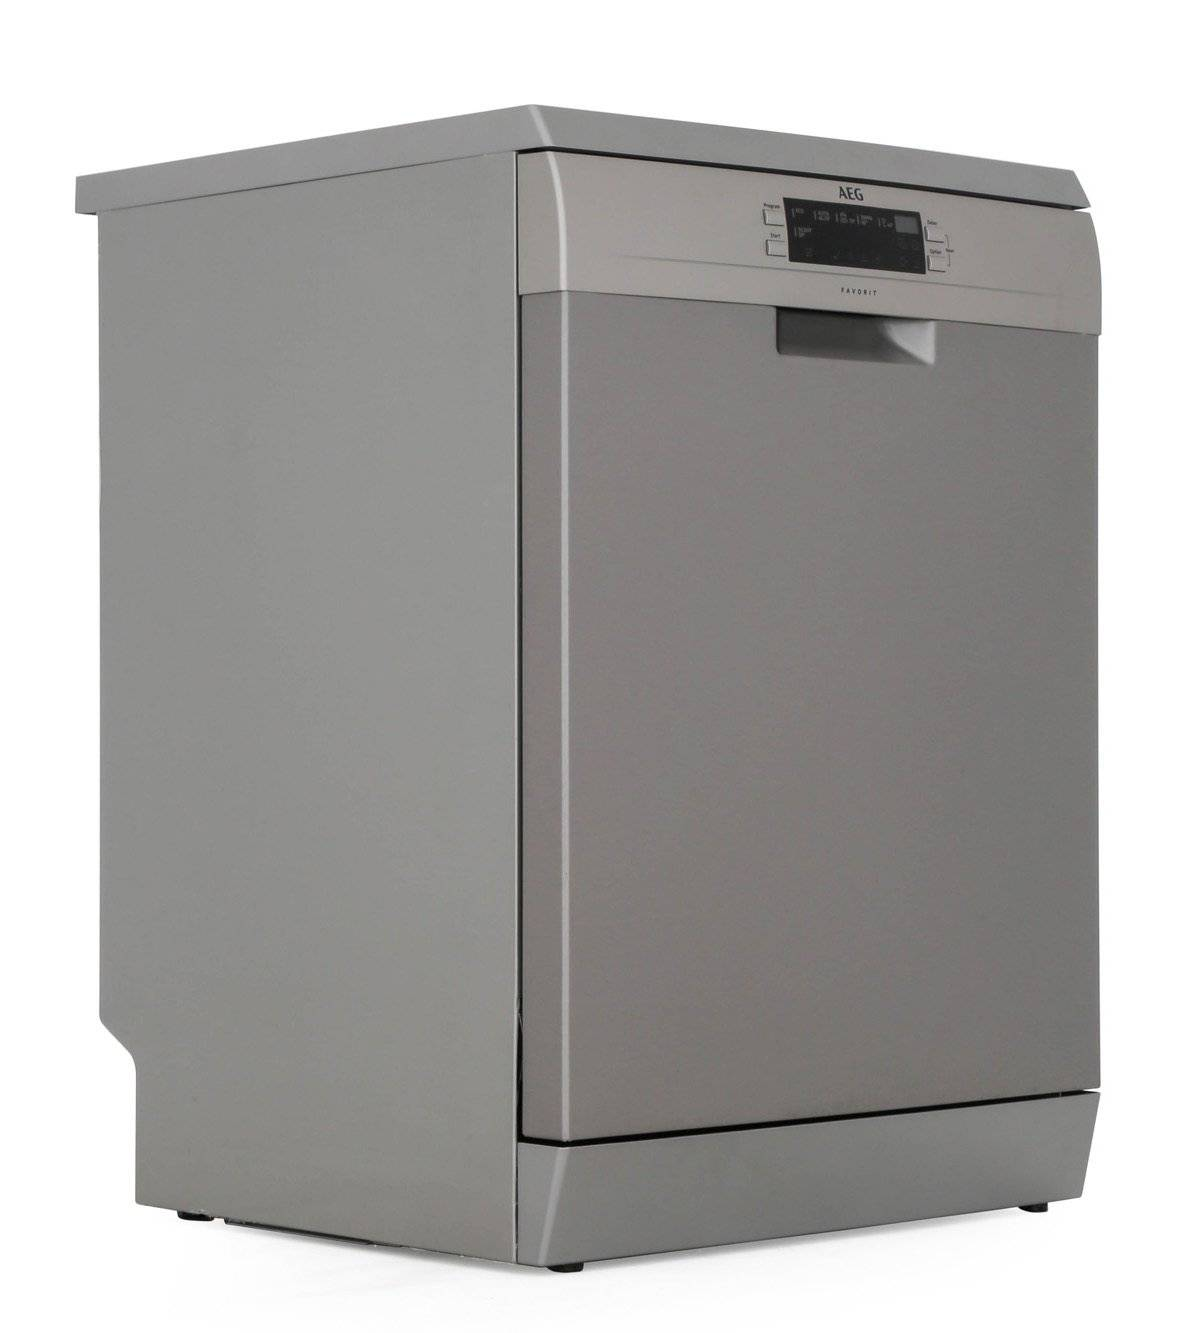 AEG FFE62620PM Dishwasher - Stainless Steel